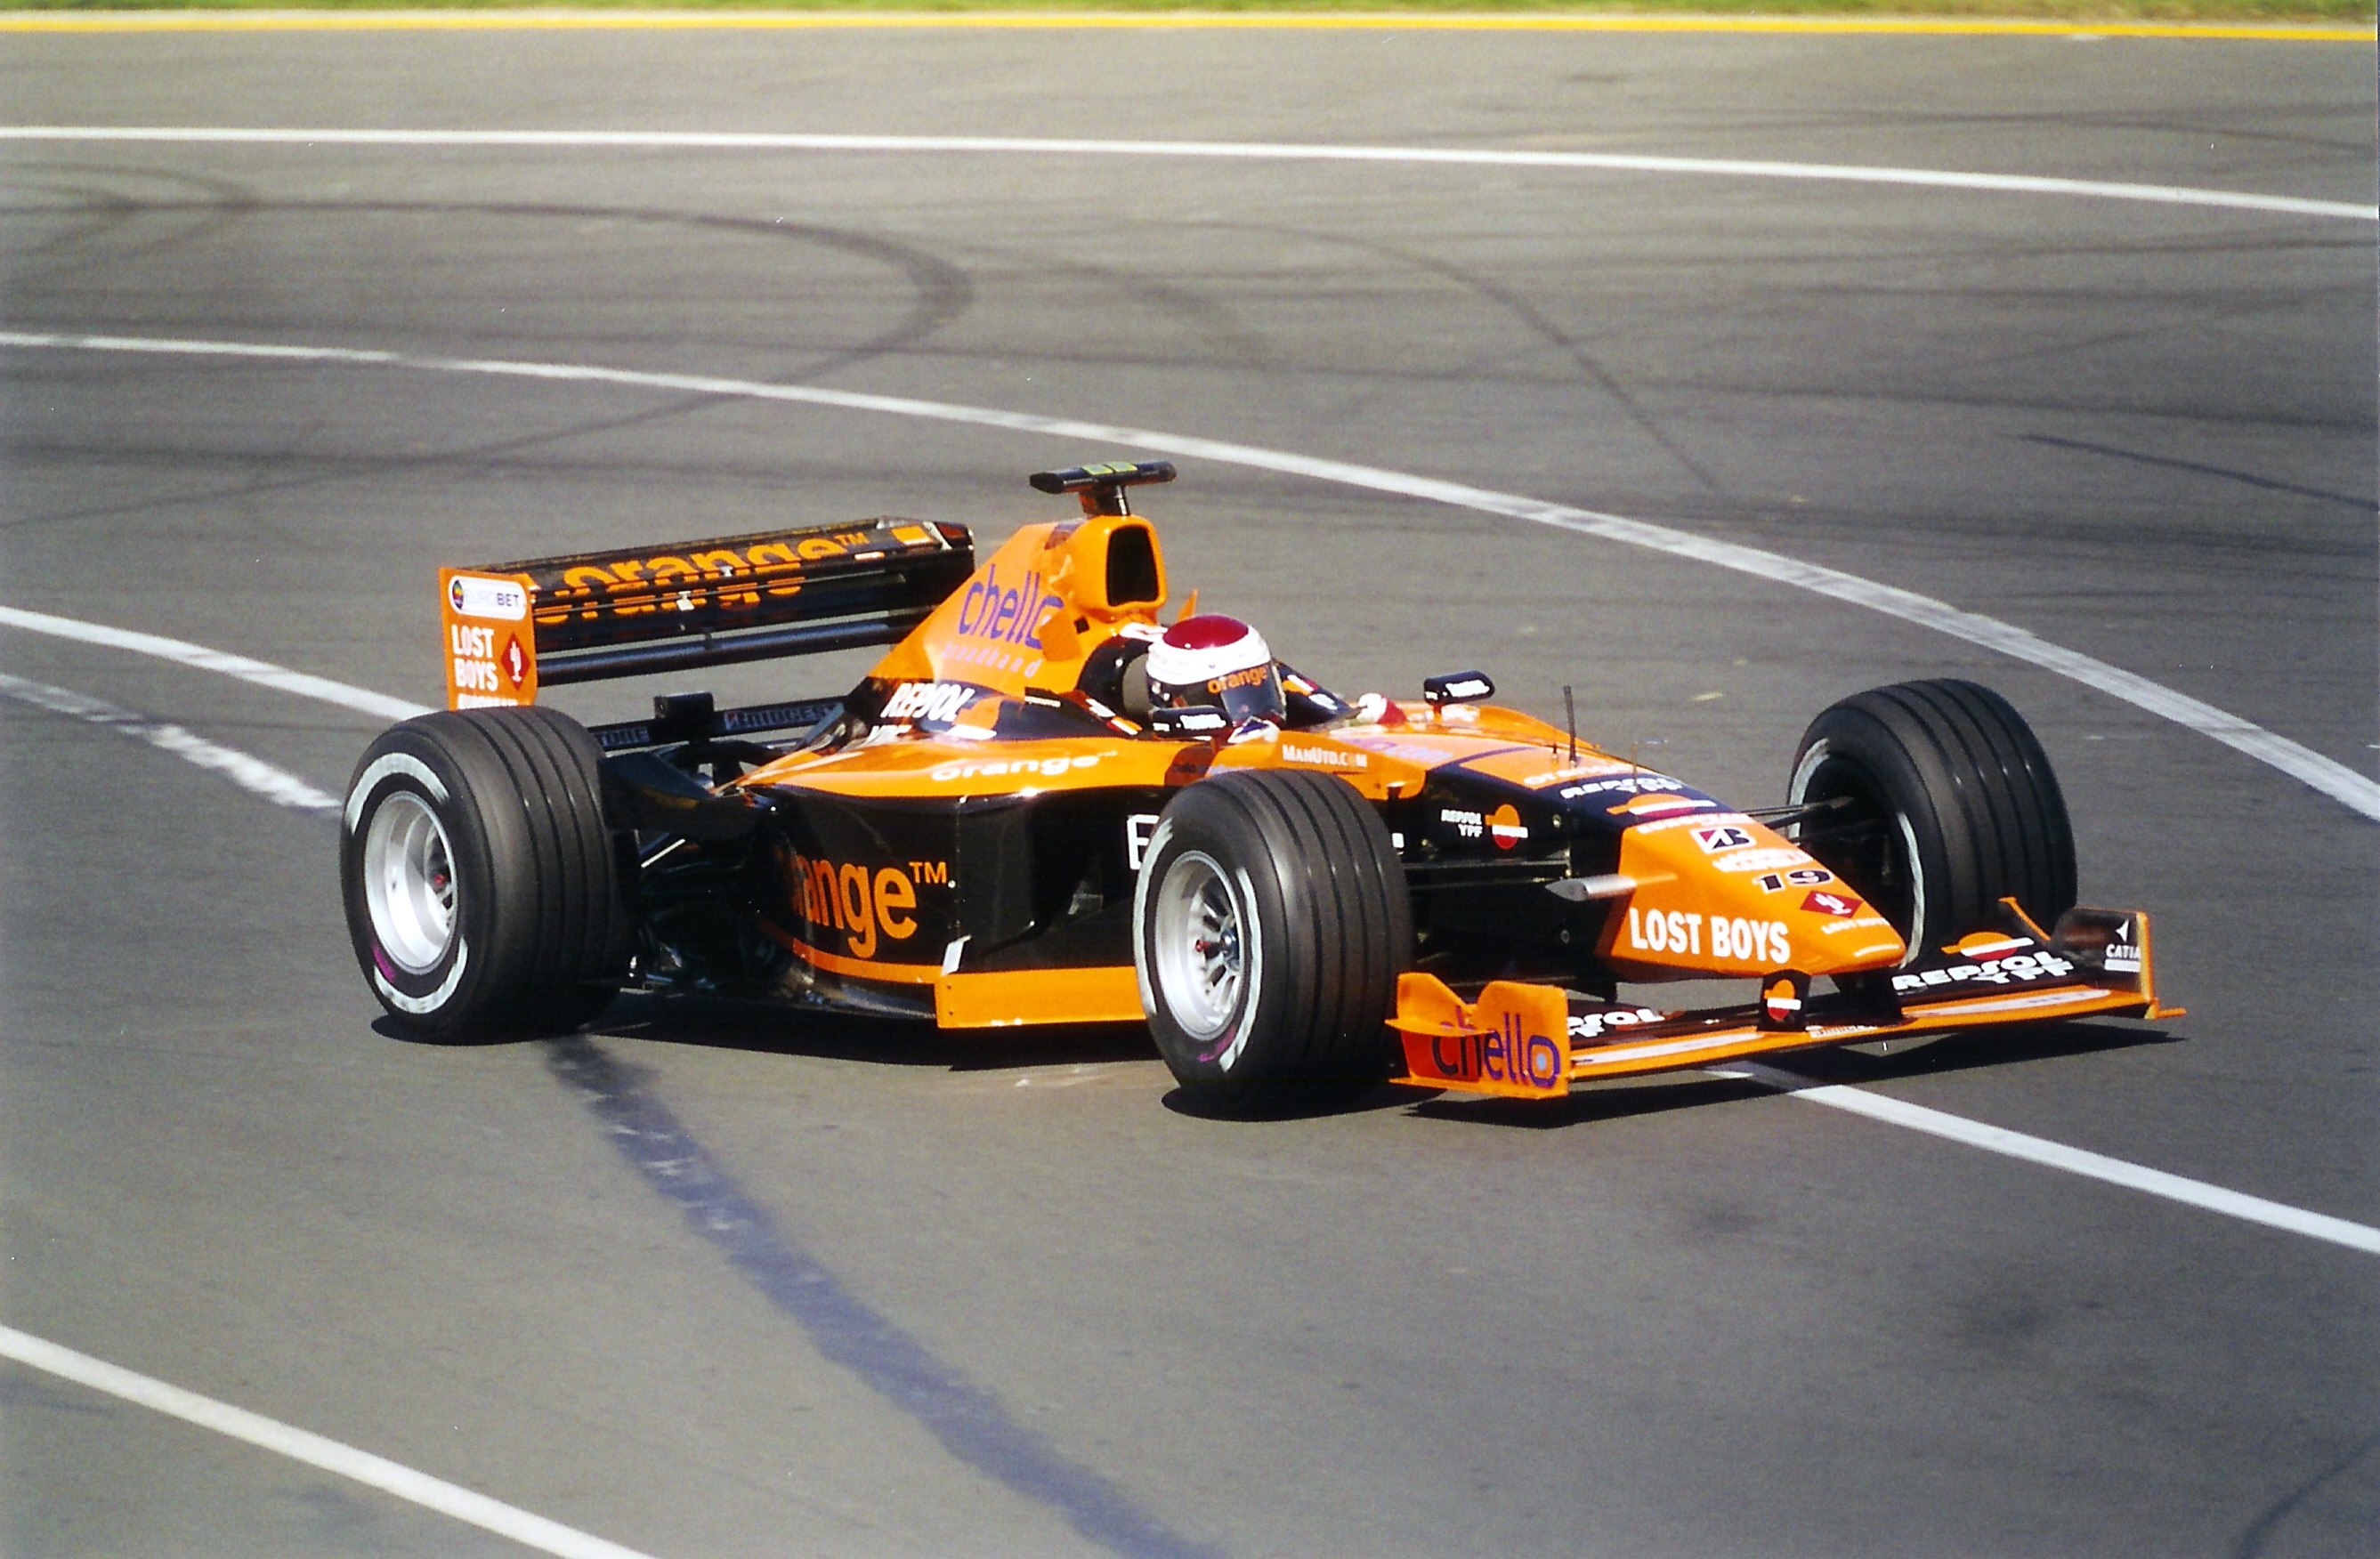 AGP_2000_VERSTAPPEN_ARROWS.3